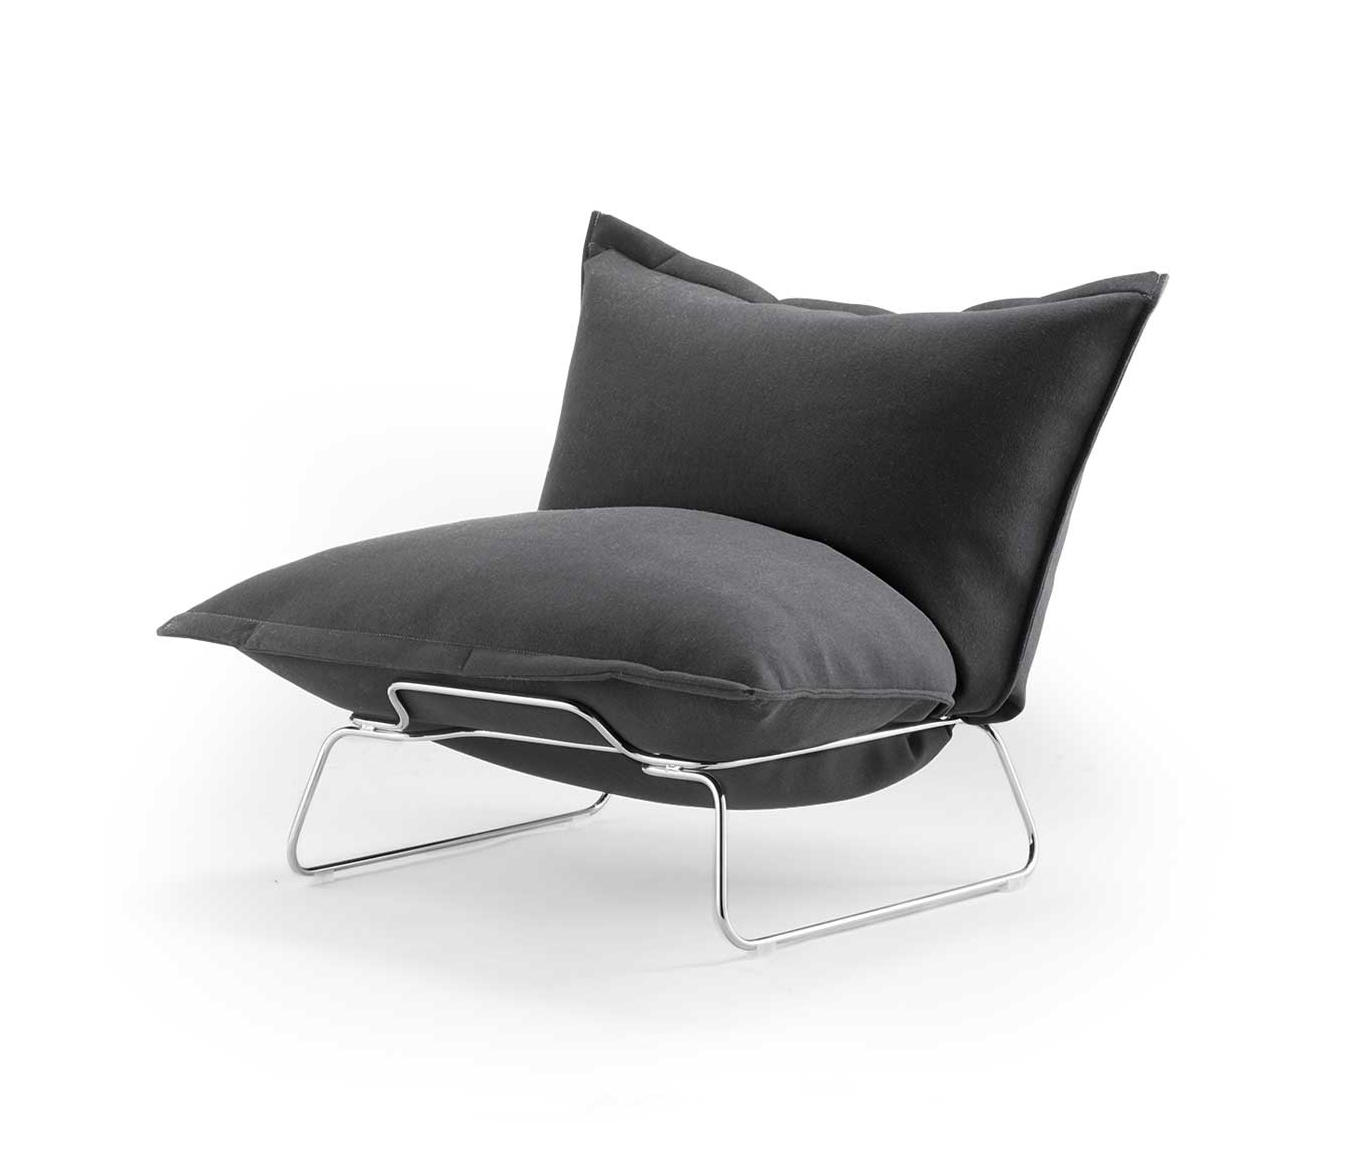 Baron by rosconi | Lounge chairs ...